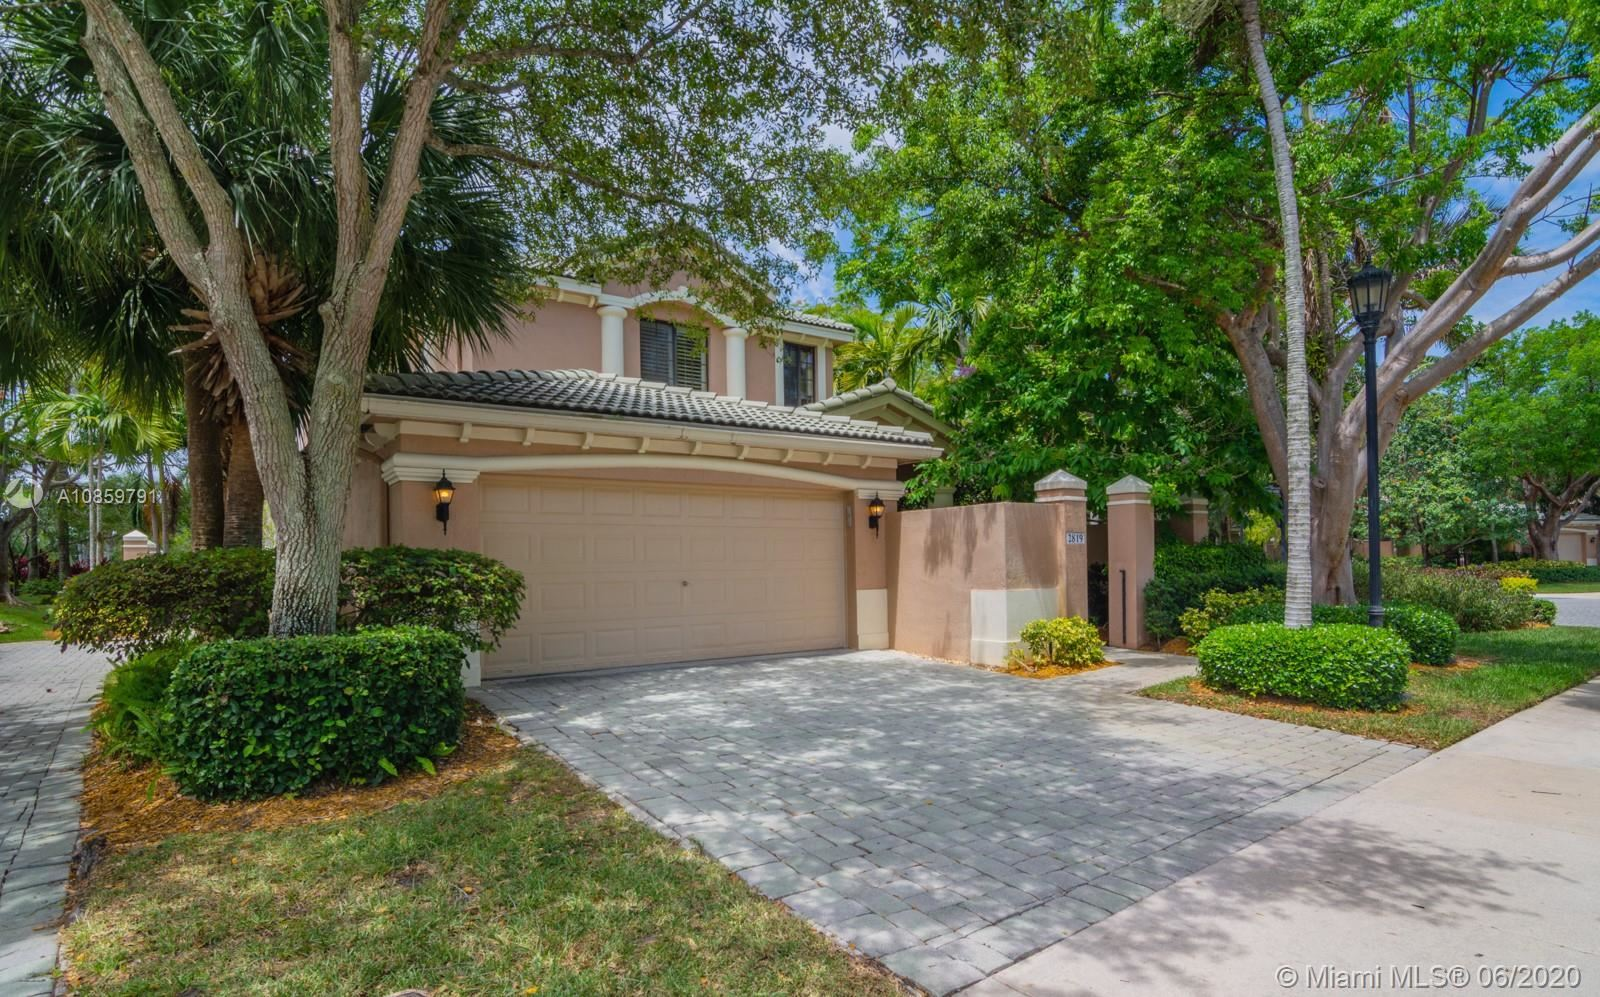 2819 Center Ct Dr #2-26, Weston, FL 33332 - #: A10859791